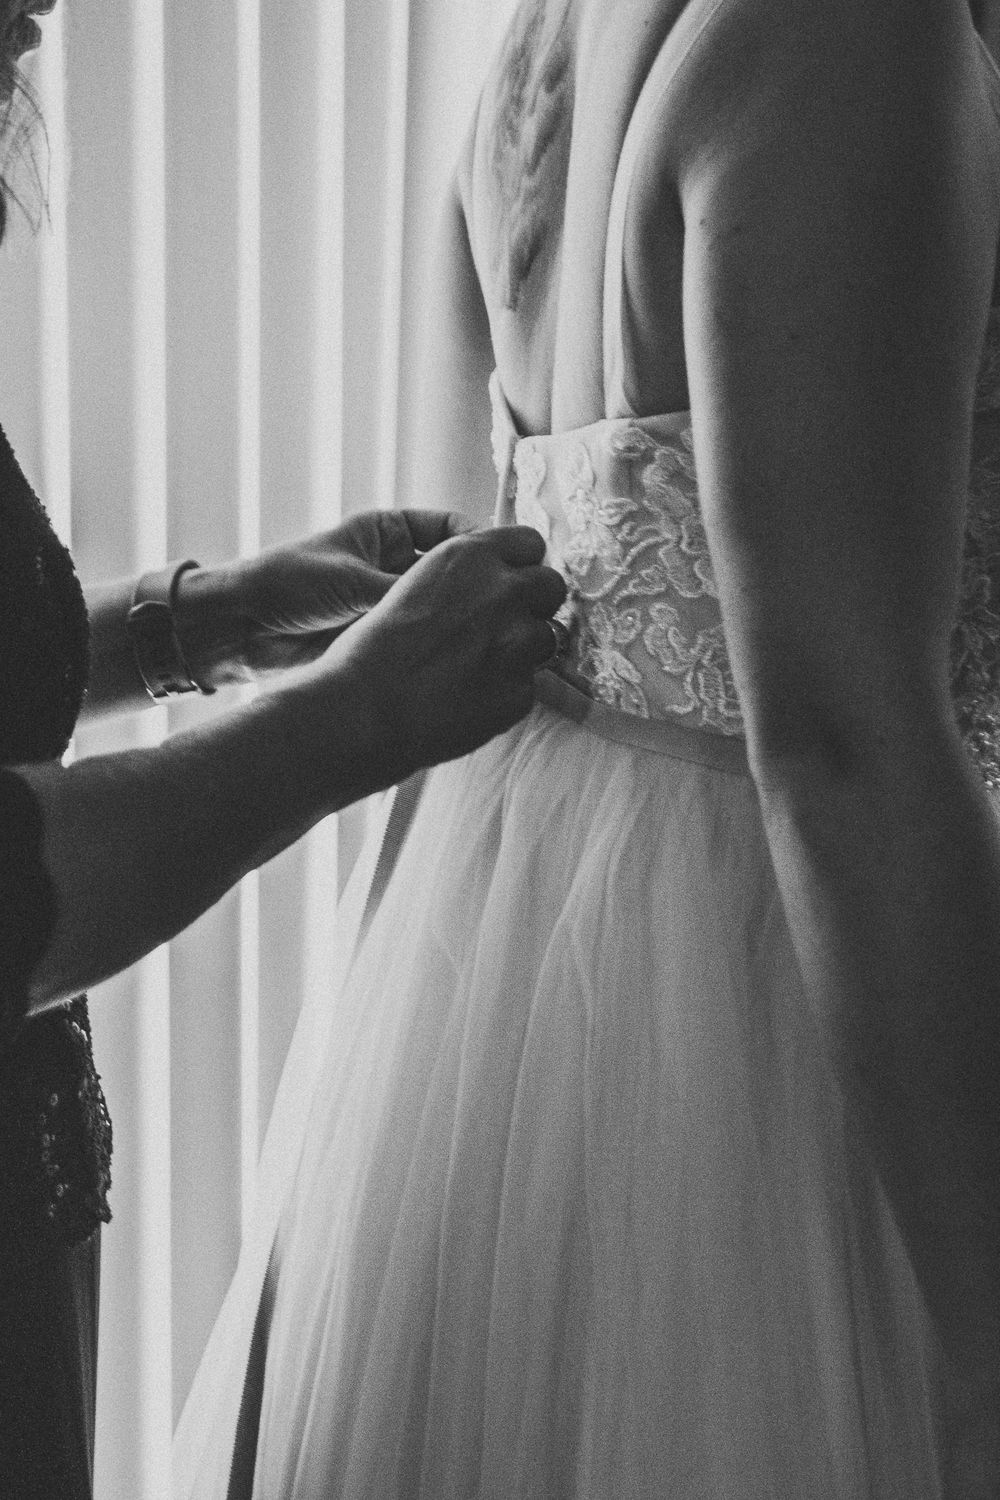 mother of the bride helping her put on her dress